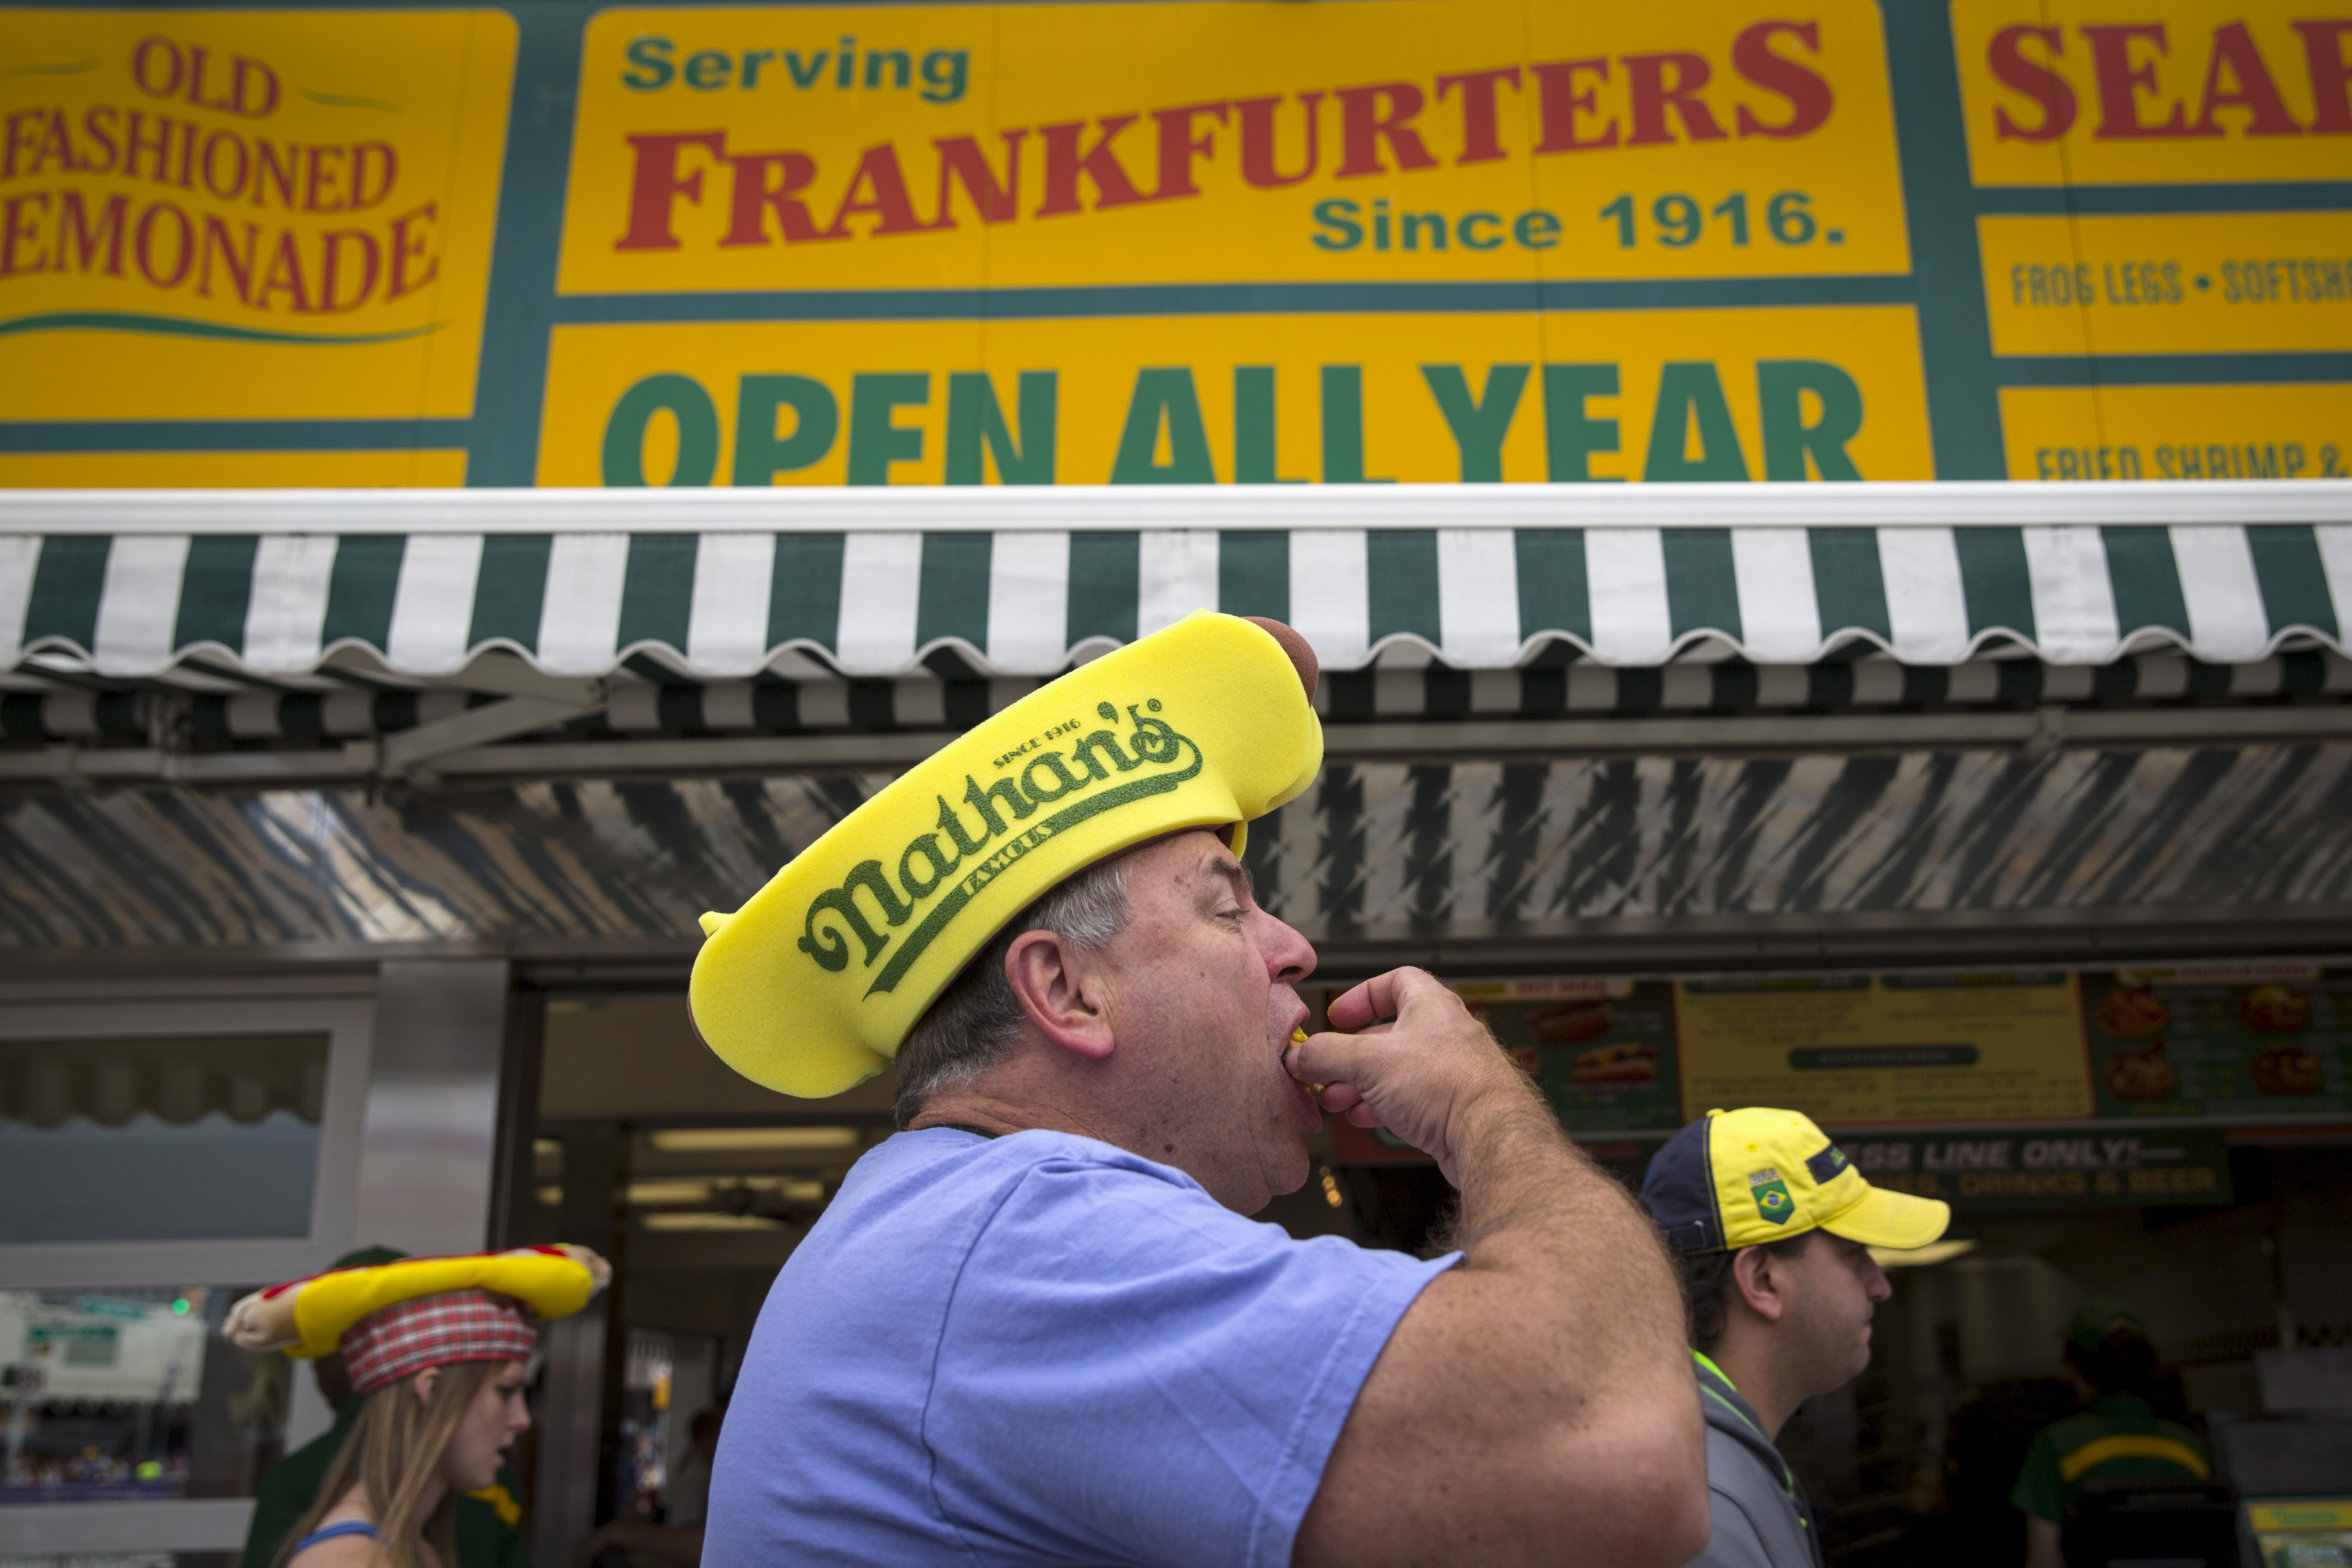 Bob Spam of Bellmore, New York eats a hot dog before the commencement of Nathan's Famous Hot Dog Eating Contest in Brooklyn, New York July 4, 2015. REUTERS/Andrew Kelly - RTX1IZXX